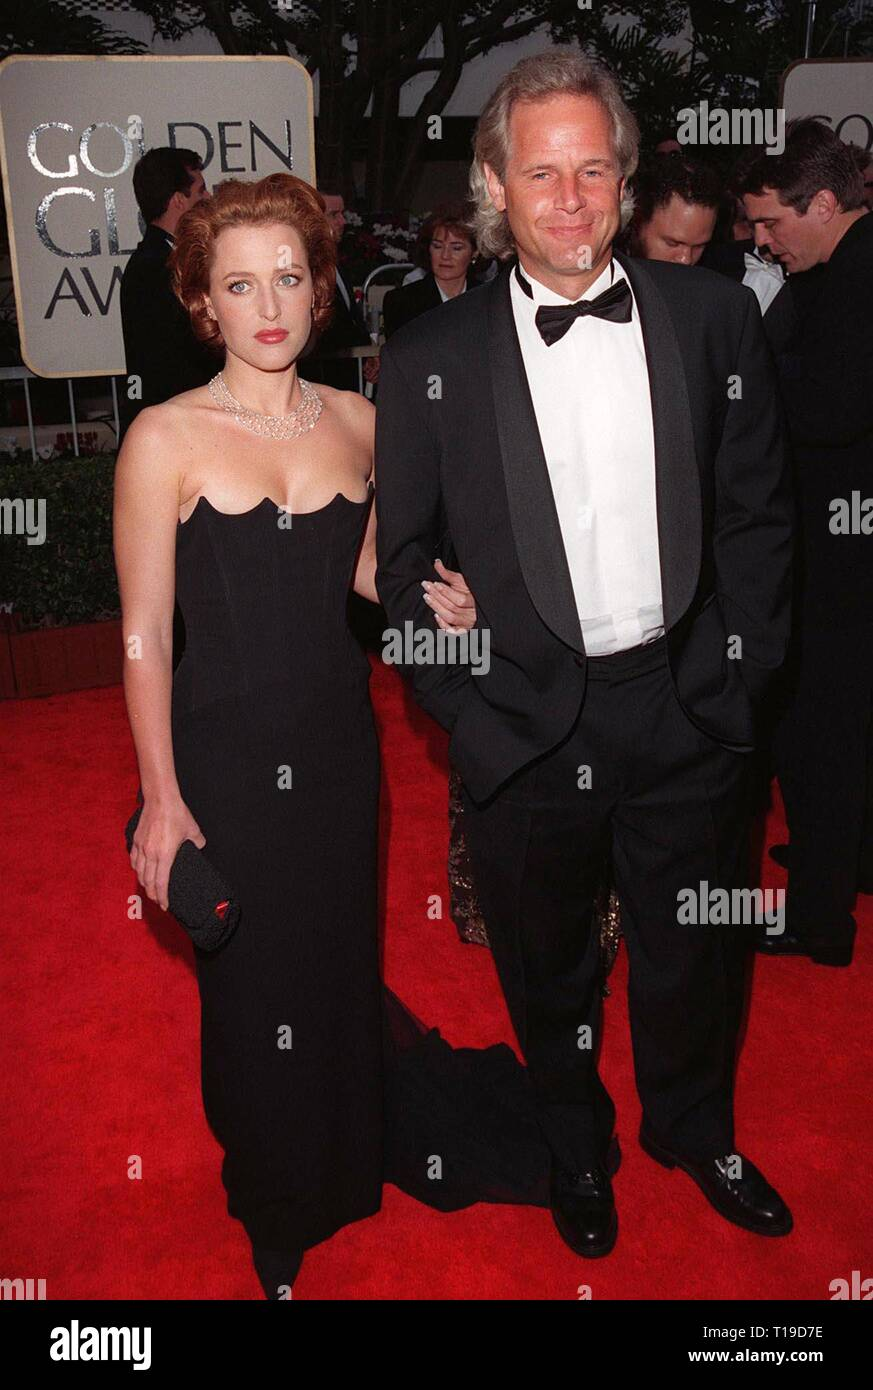 LOS ANGELES, CA - January 18, 1998: Actress GILLIAN ANDERSON & 'X-Files' creator CHRIS CARTER at the Golden Globe Awards. - Stock Image